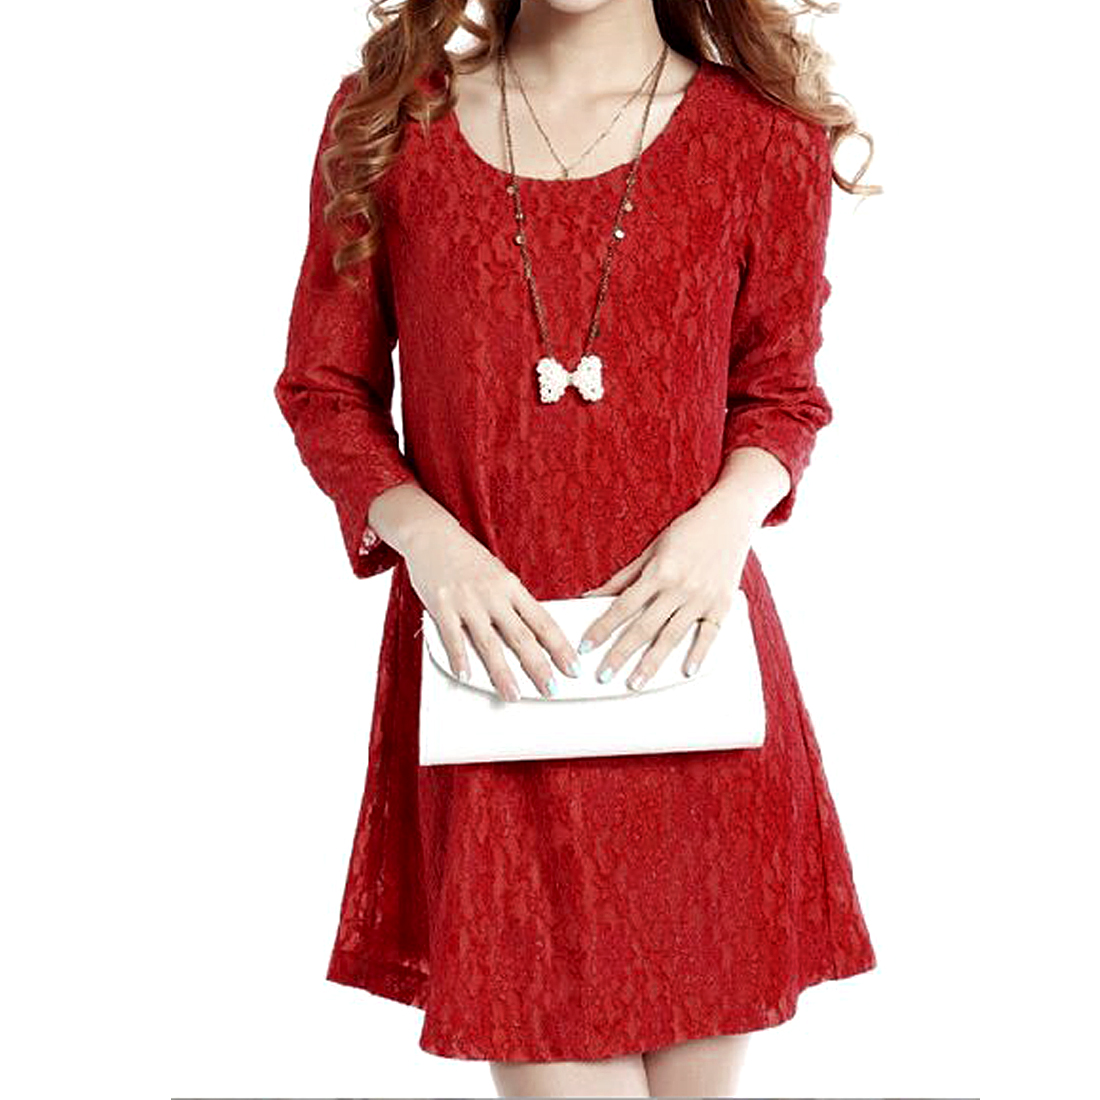 Women Flower Design Bright Red Lace Straight Dress XS